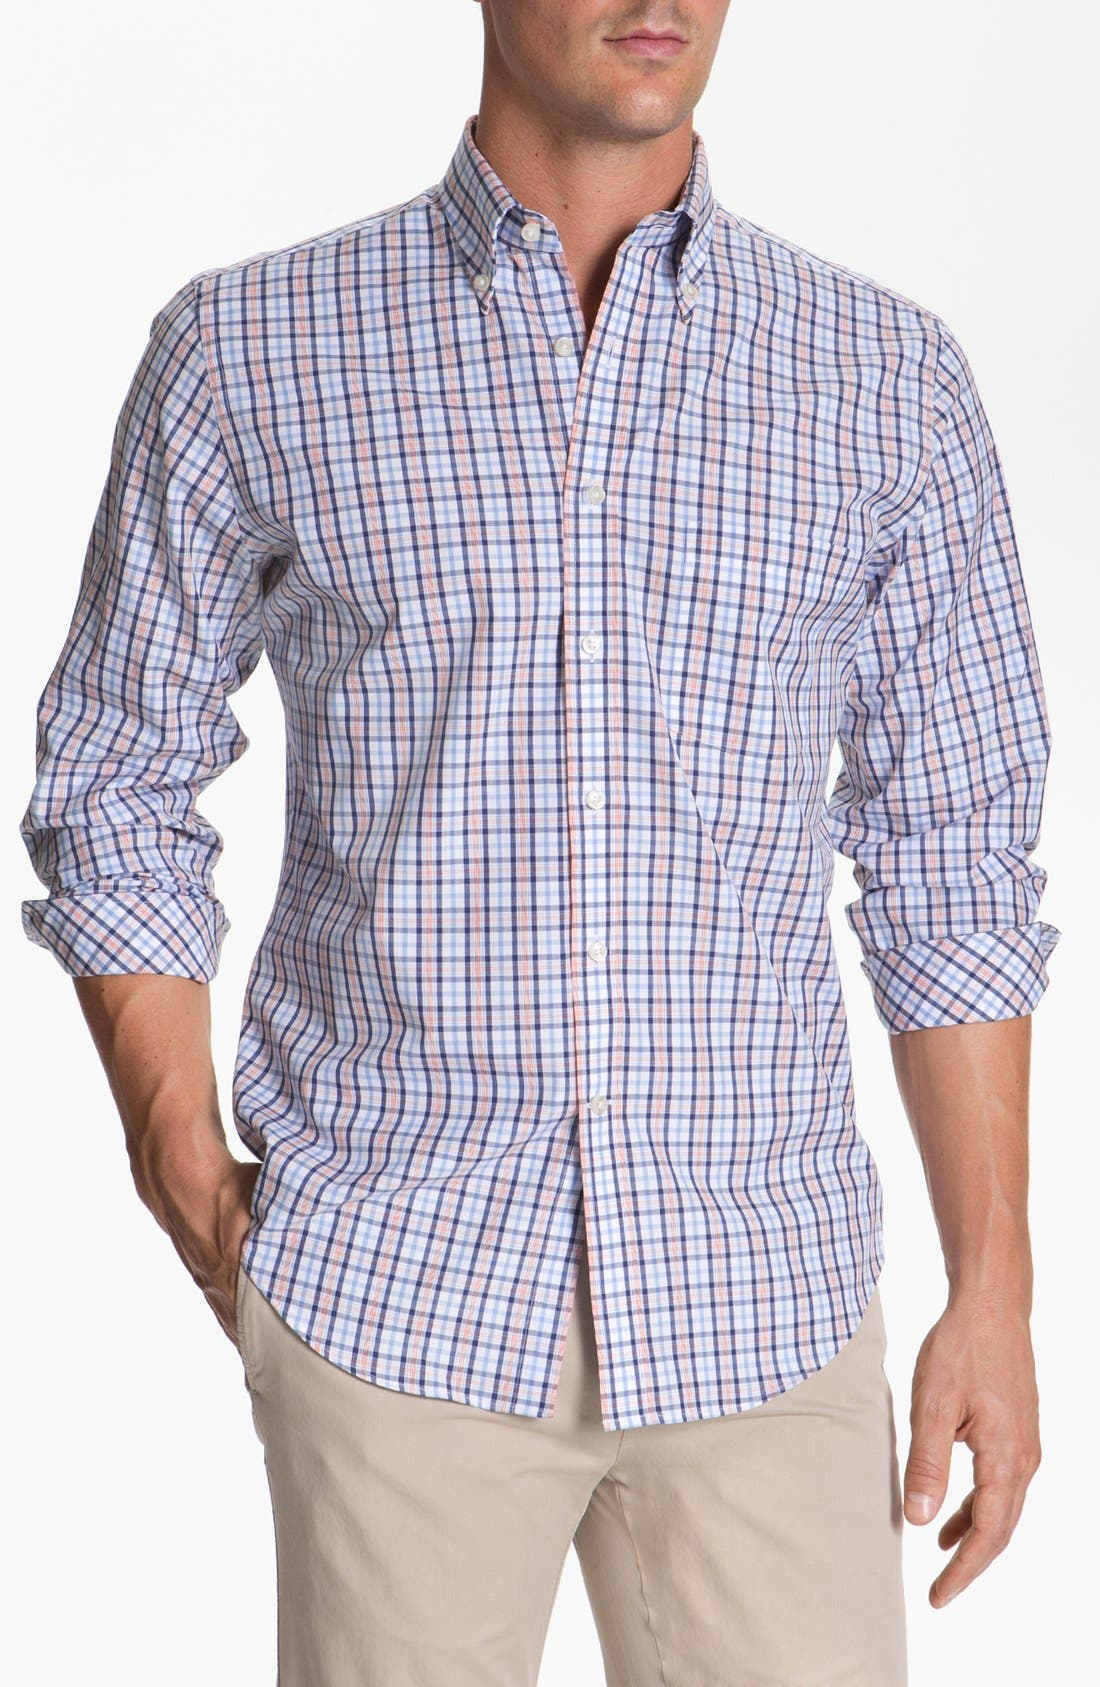 Alternate Image 1 Selected - Maker & Company Regular Fit Sport Shirt (Online Only)